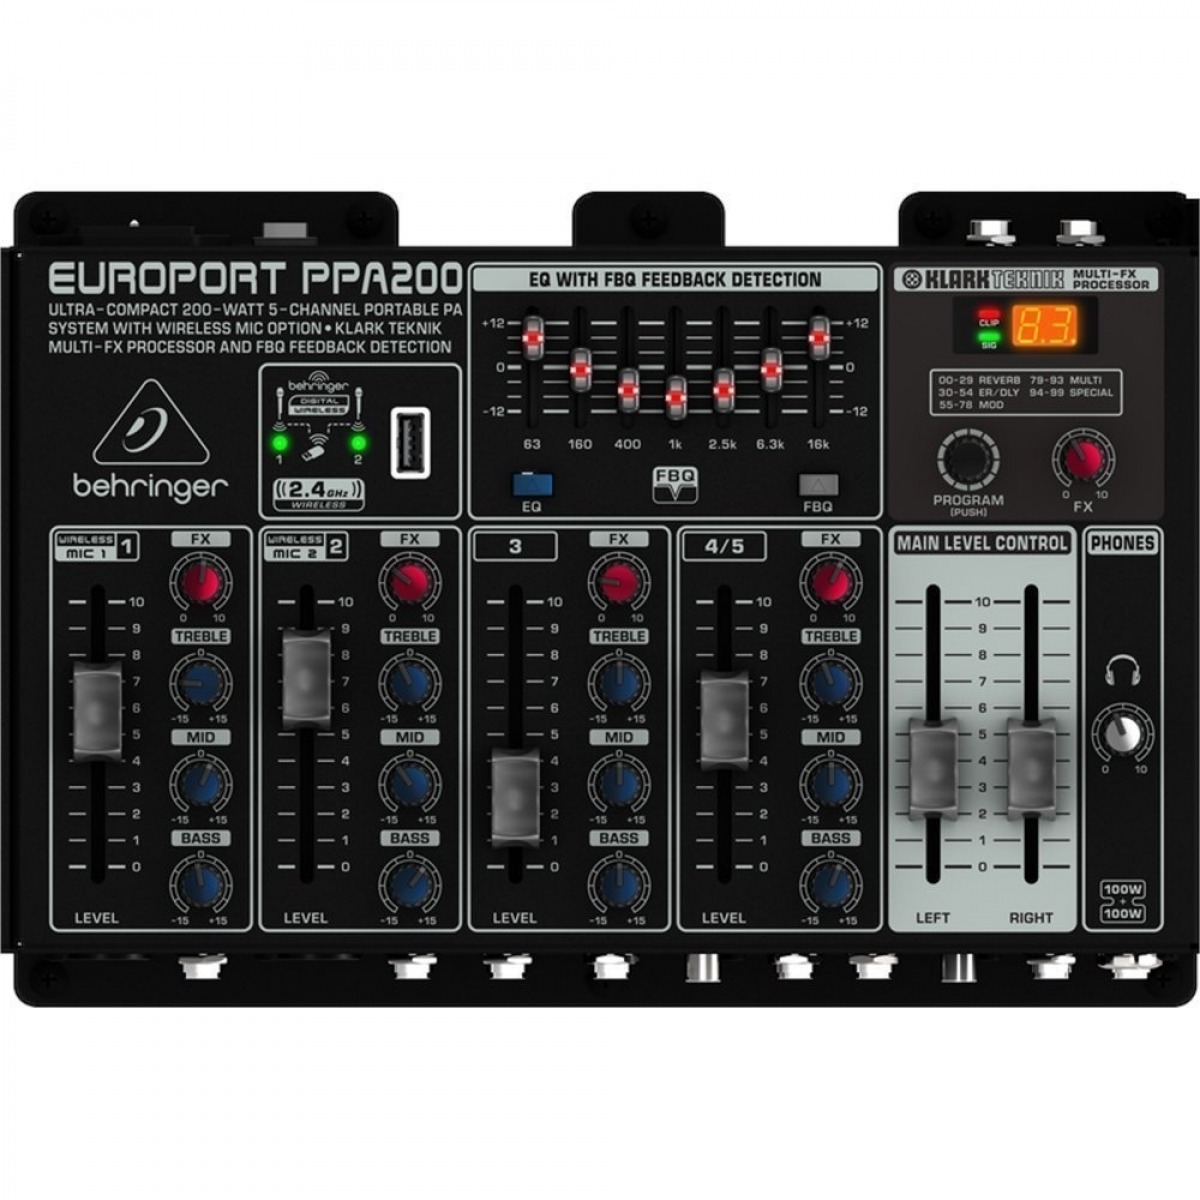 Behringer Europort Ppa 200 Portable Watt 5 Channel Powered Audio Mixer Speaker System 1485873722 2793348 Z 2793349